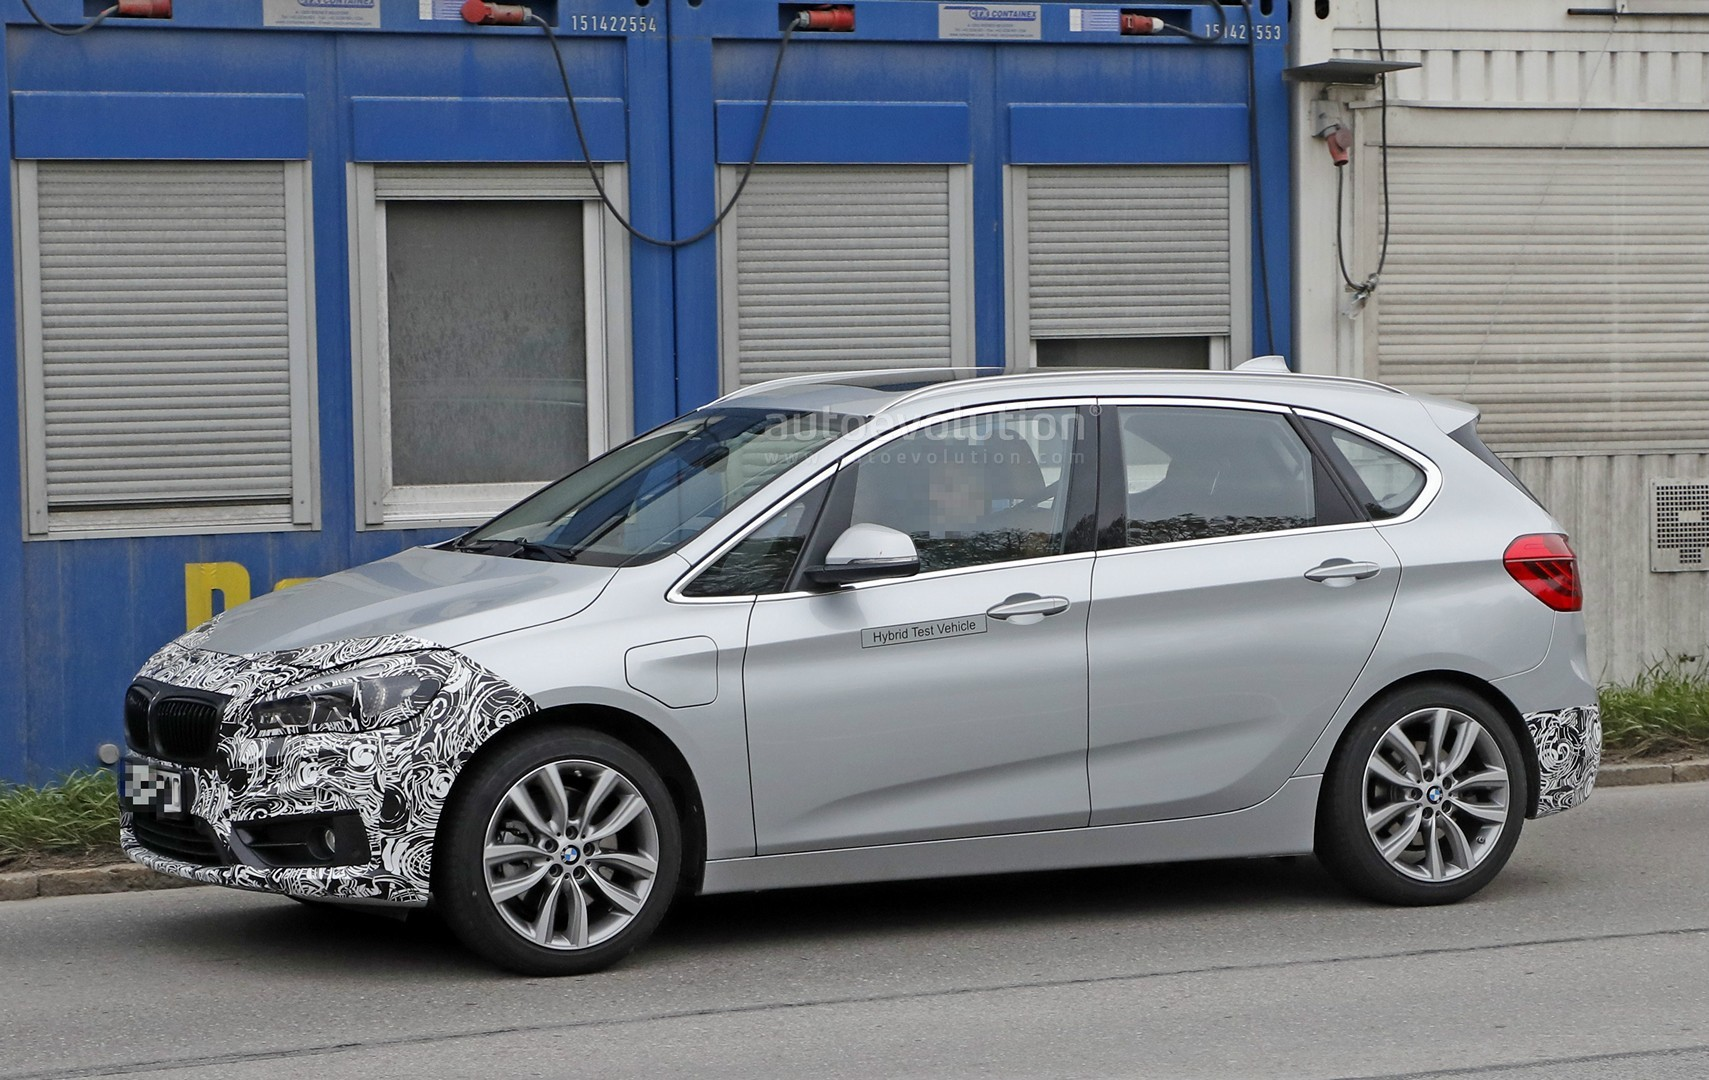 2018 - [BMW] Série 2 Active Tourer restylé  2018-bmw-2-series-active-tourer-spied-with-cool-new-headlights_10